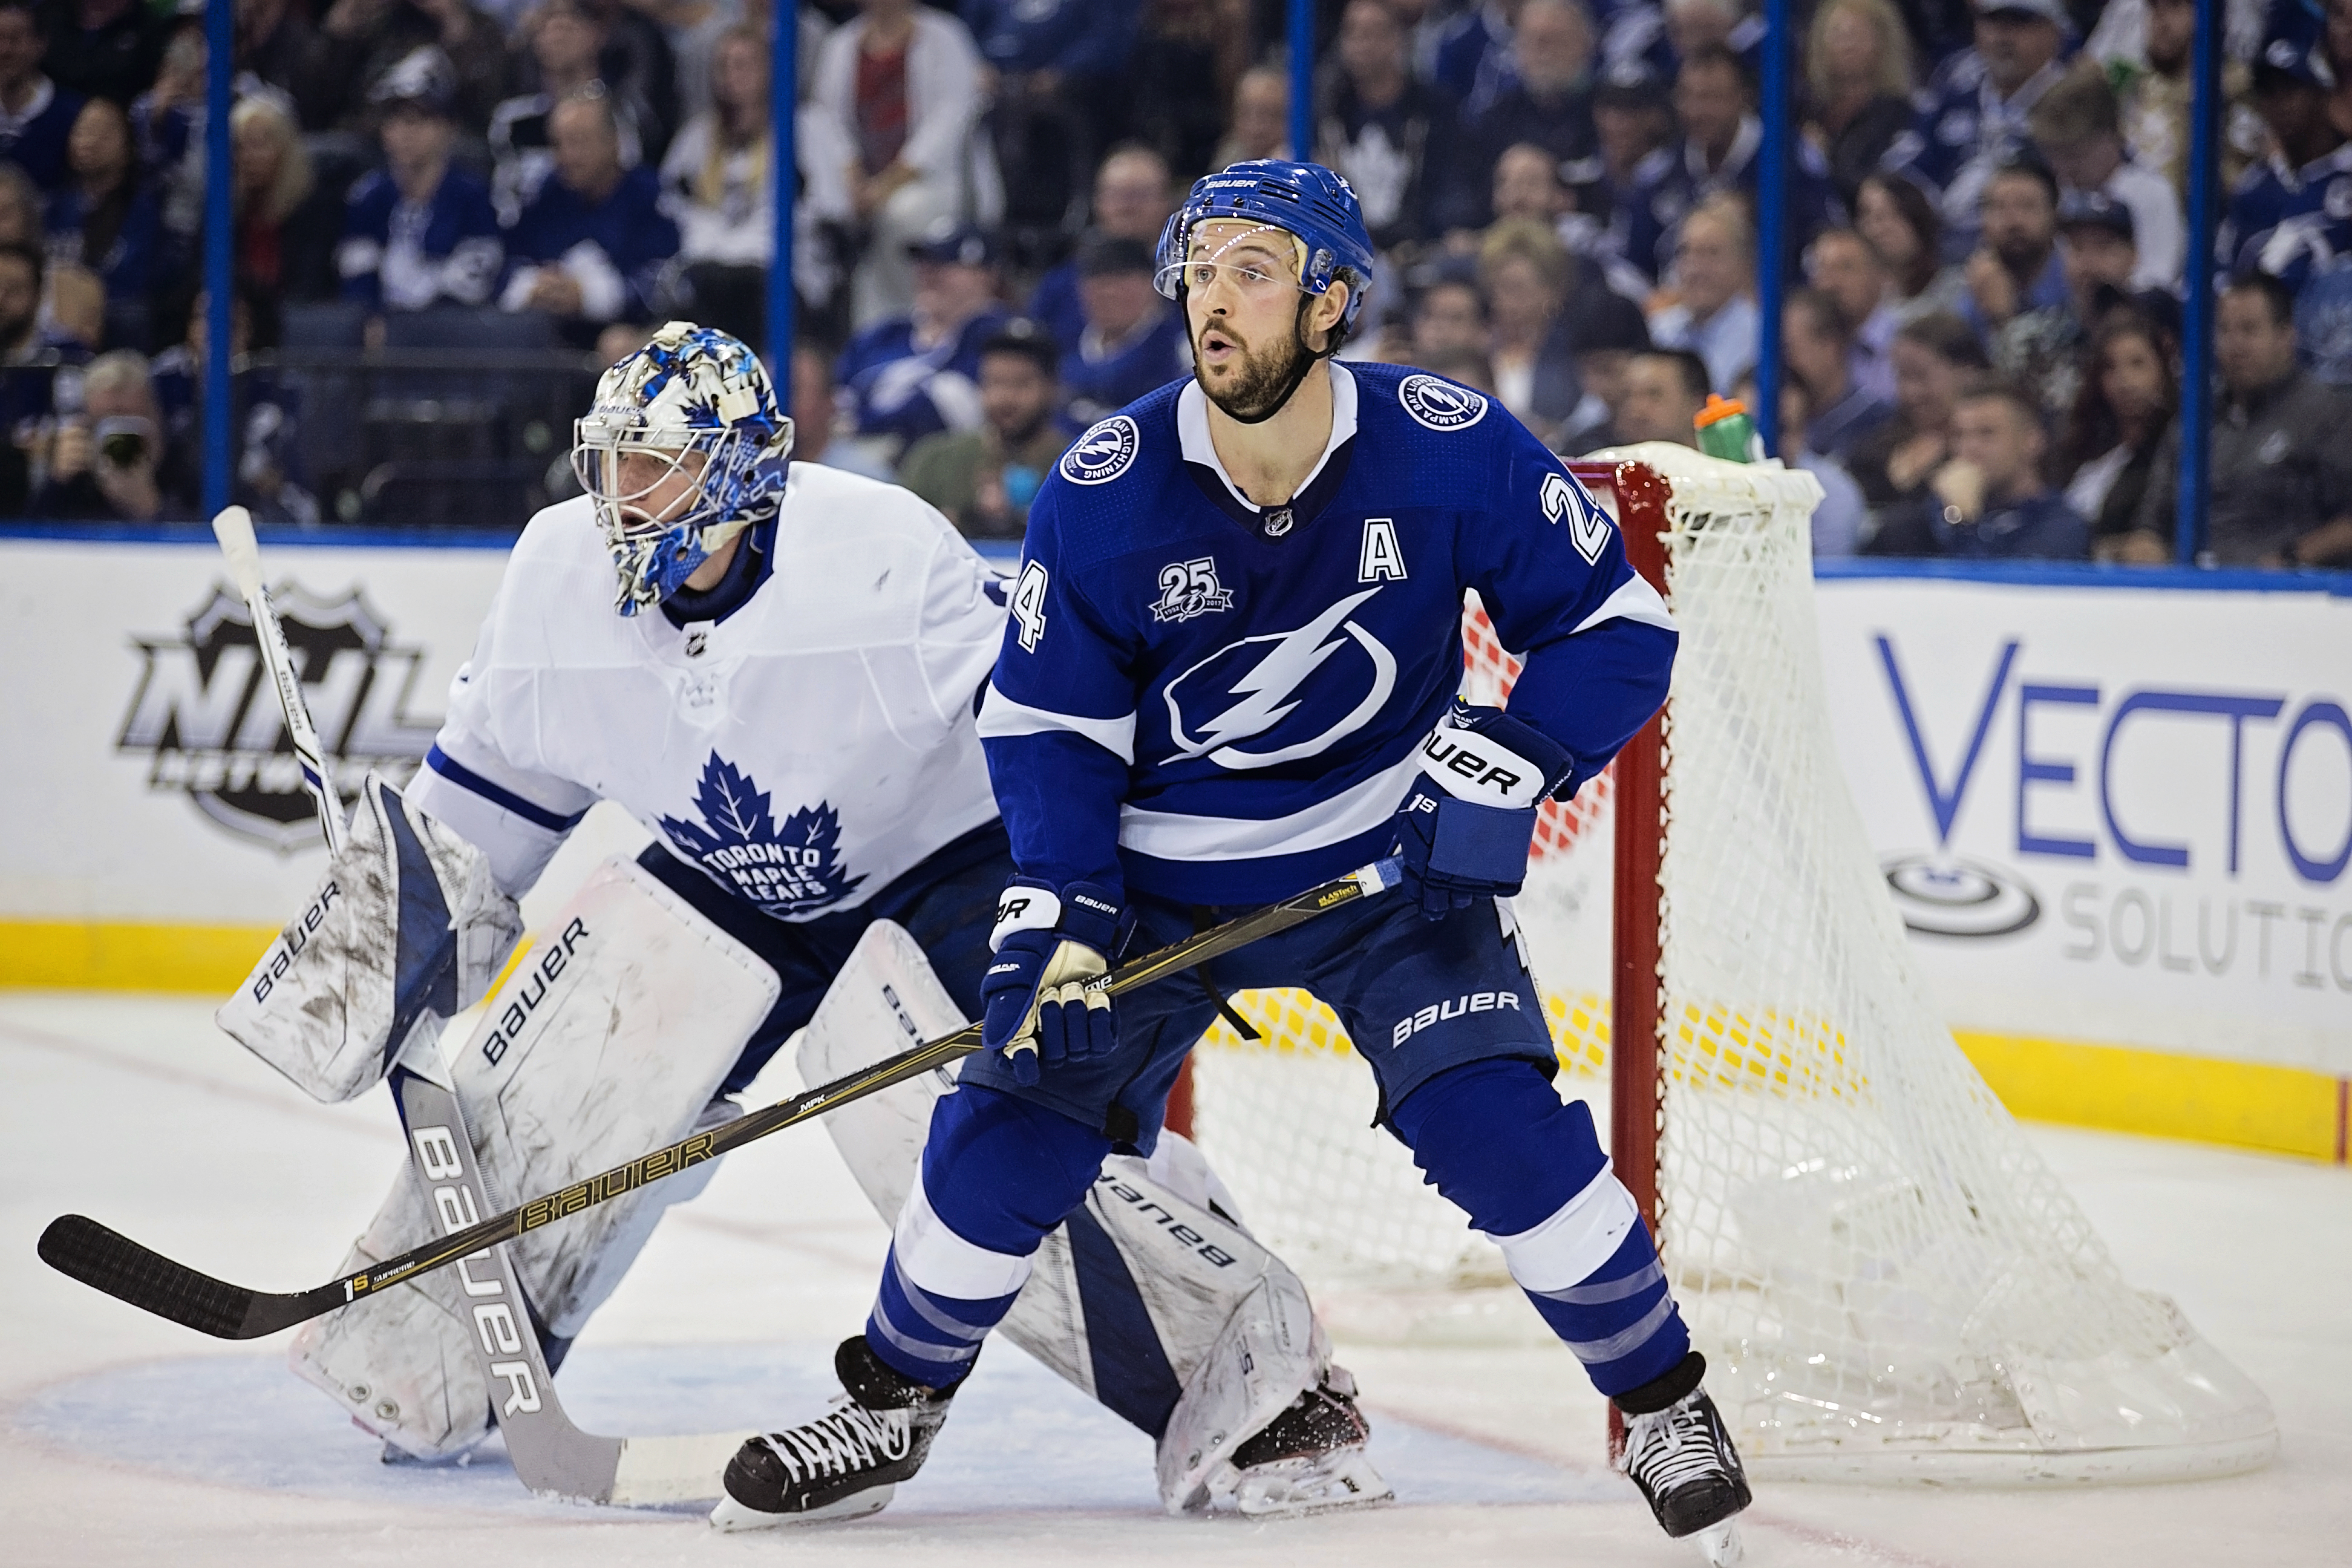 Callahan fights for position for Bolts./CARMEN MANDATO